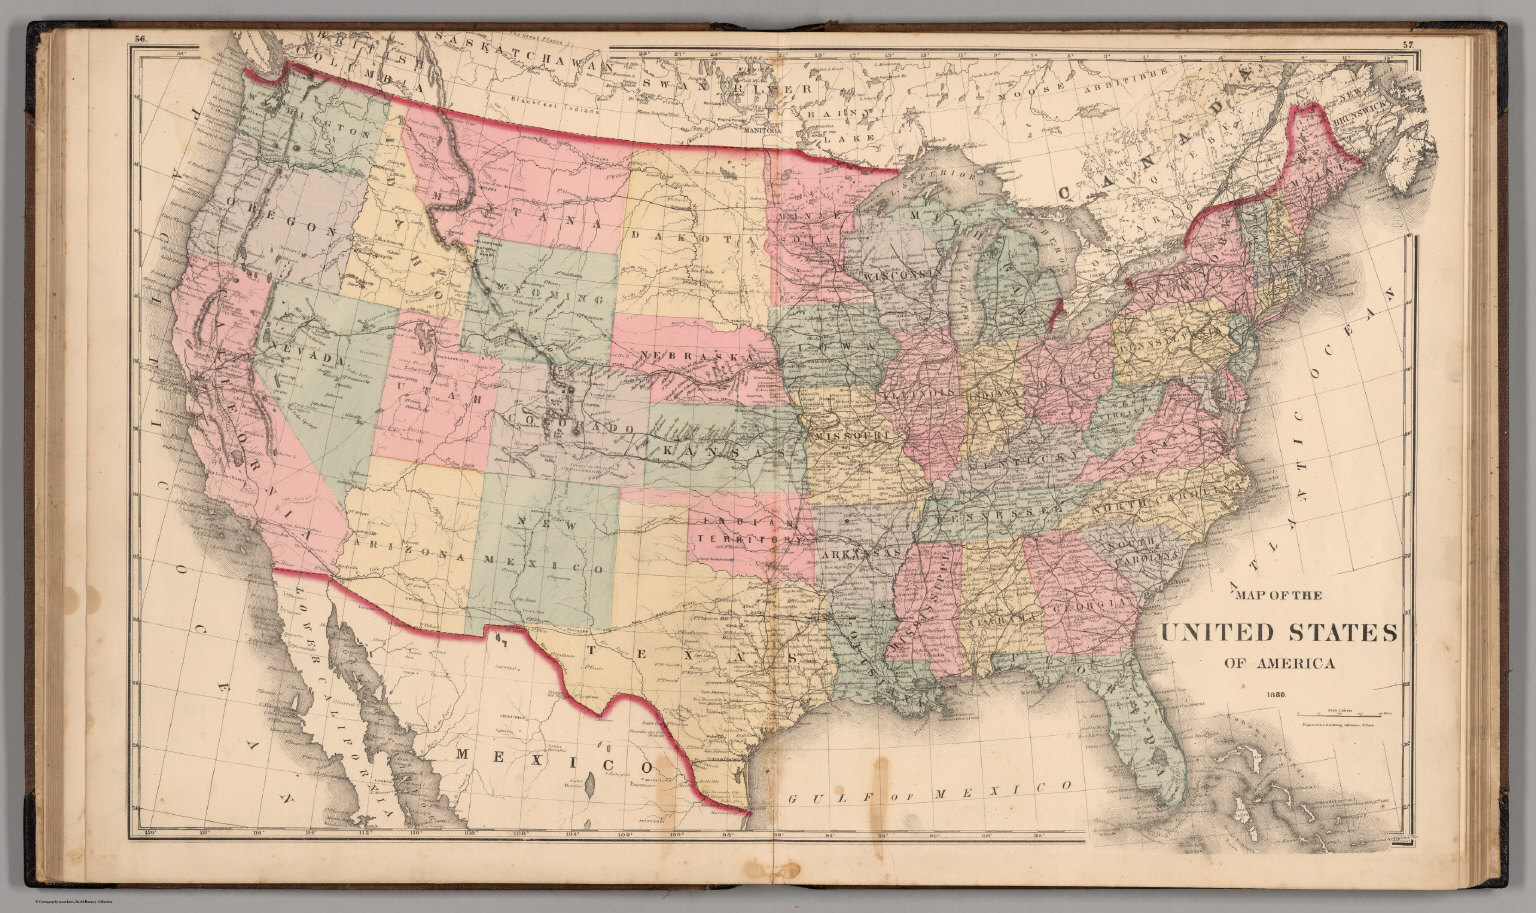 United States of America, 1880.   David Rumsey Historical Map